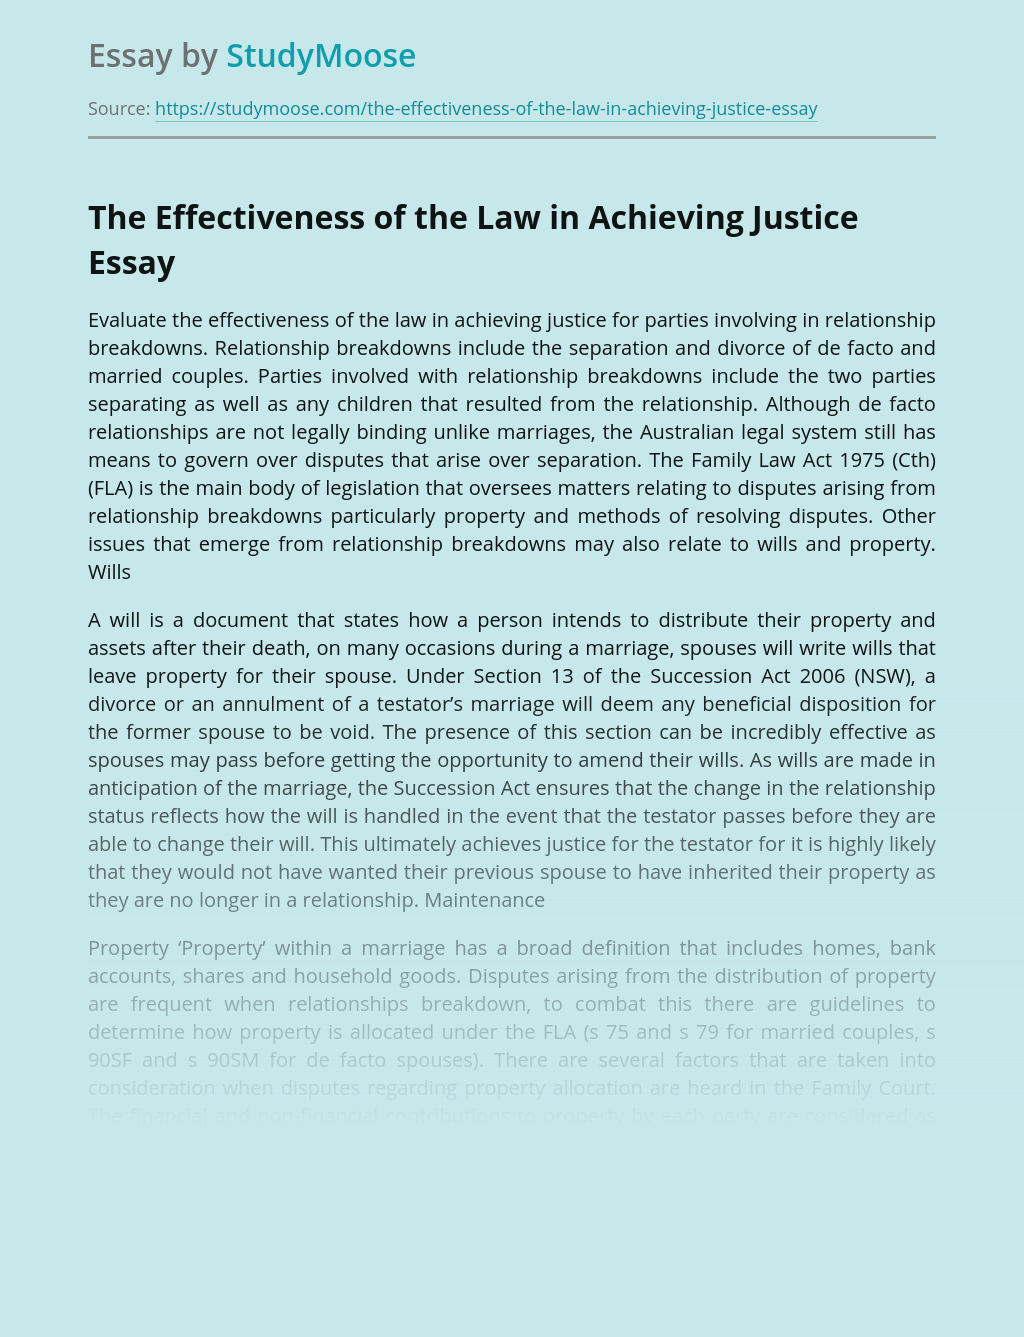 The Effectiveness of the Law in Achieving Justice